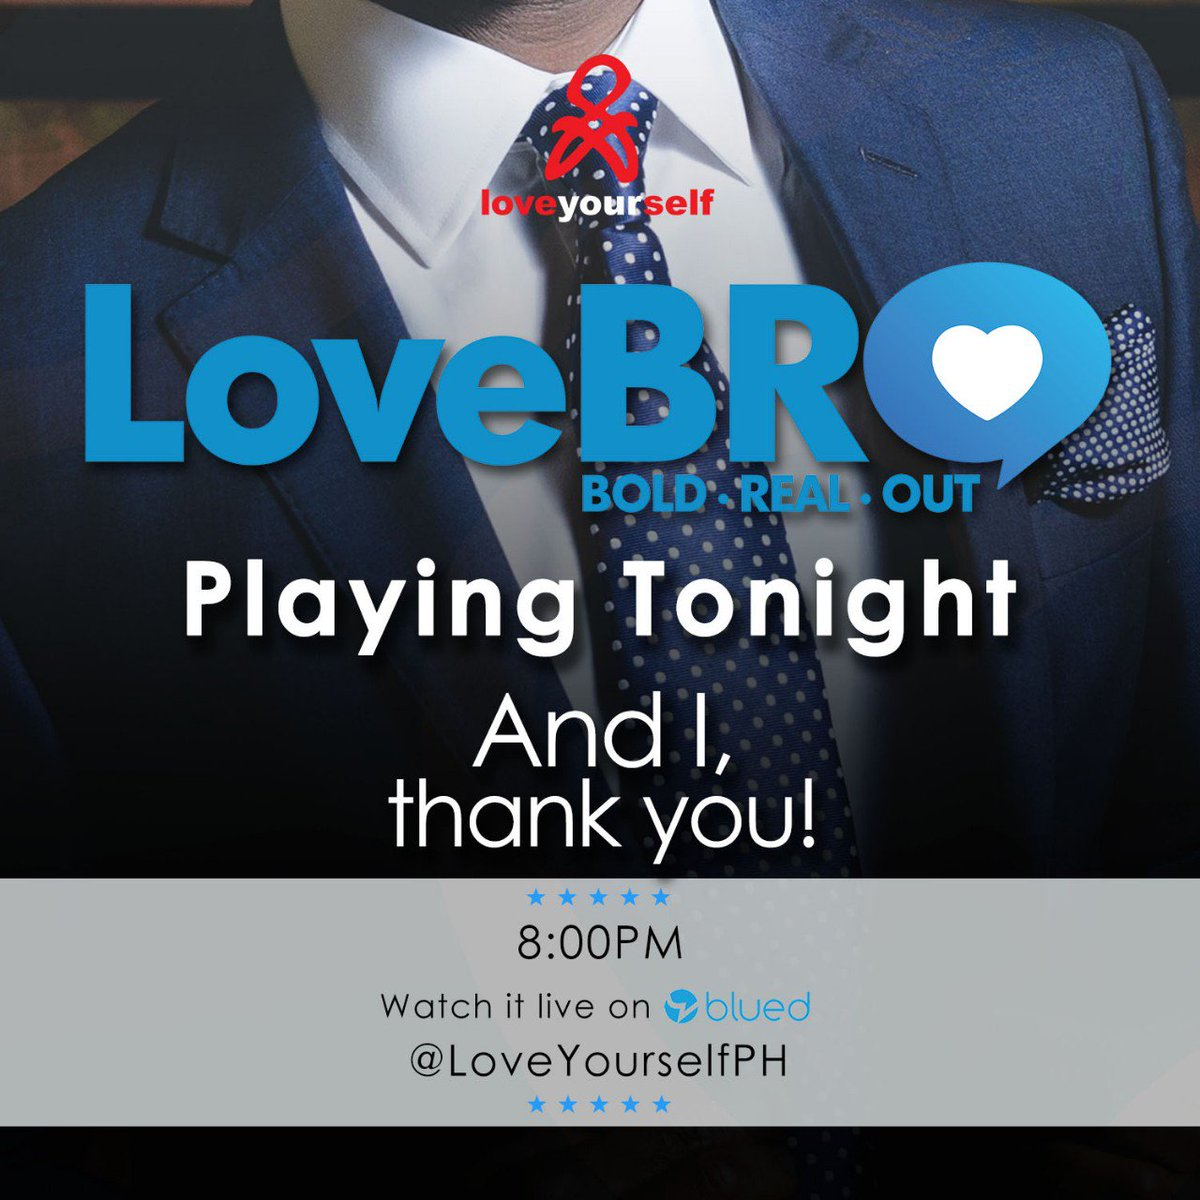 Eme eme boom pak! Ganern! AND I THANK YOU! LoveBRO playing tonight at 8pm here @LoveYourselfPhs blued account. Just download @blued app at bit.ly/LoveBro. See you and Enjoy! #LoveBRO